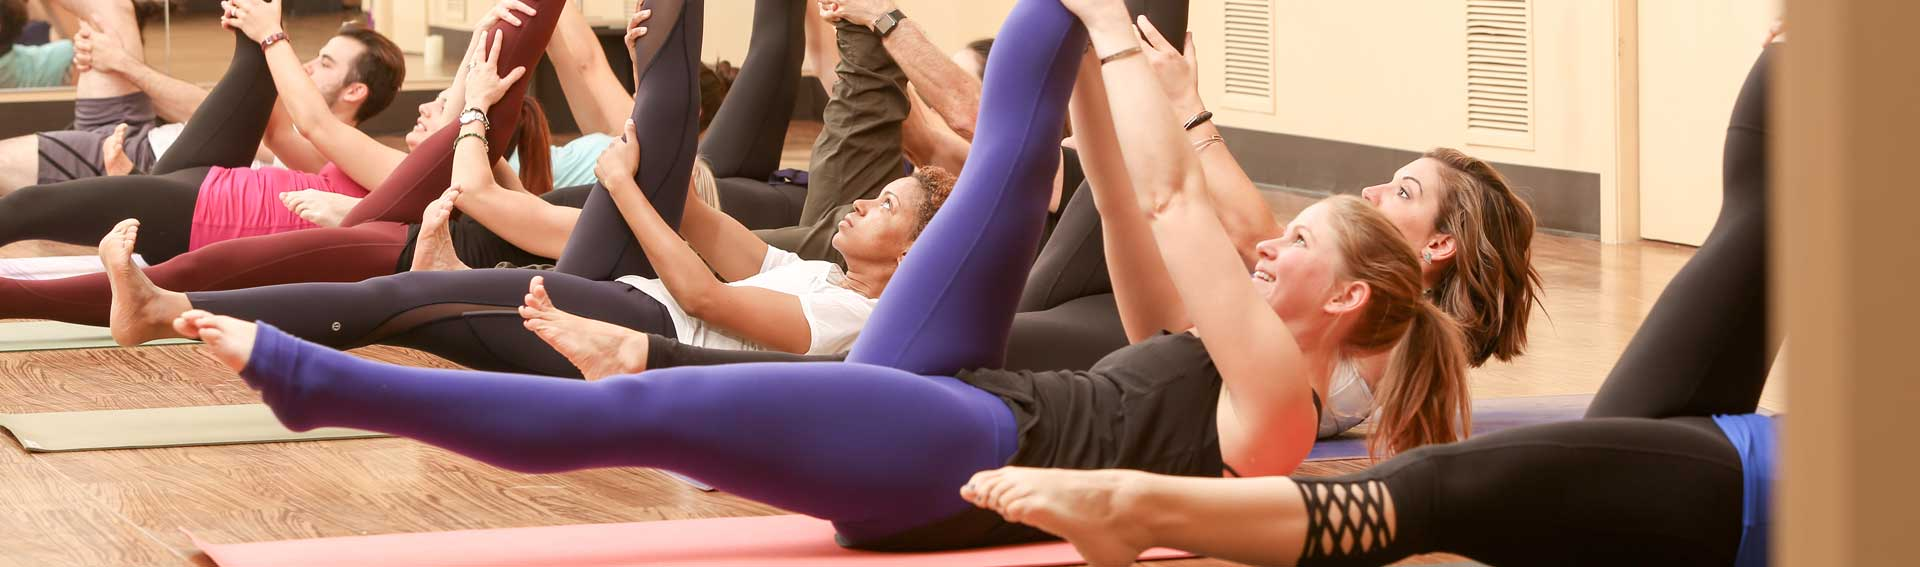 Yoga class participants lay on their backs with one leg in the air